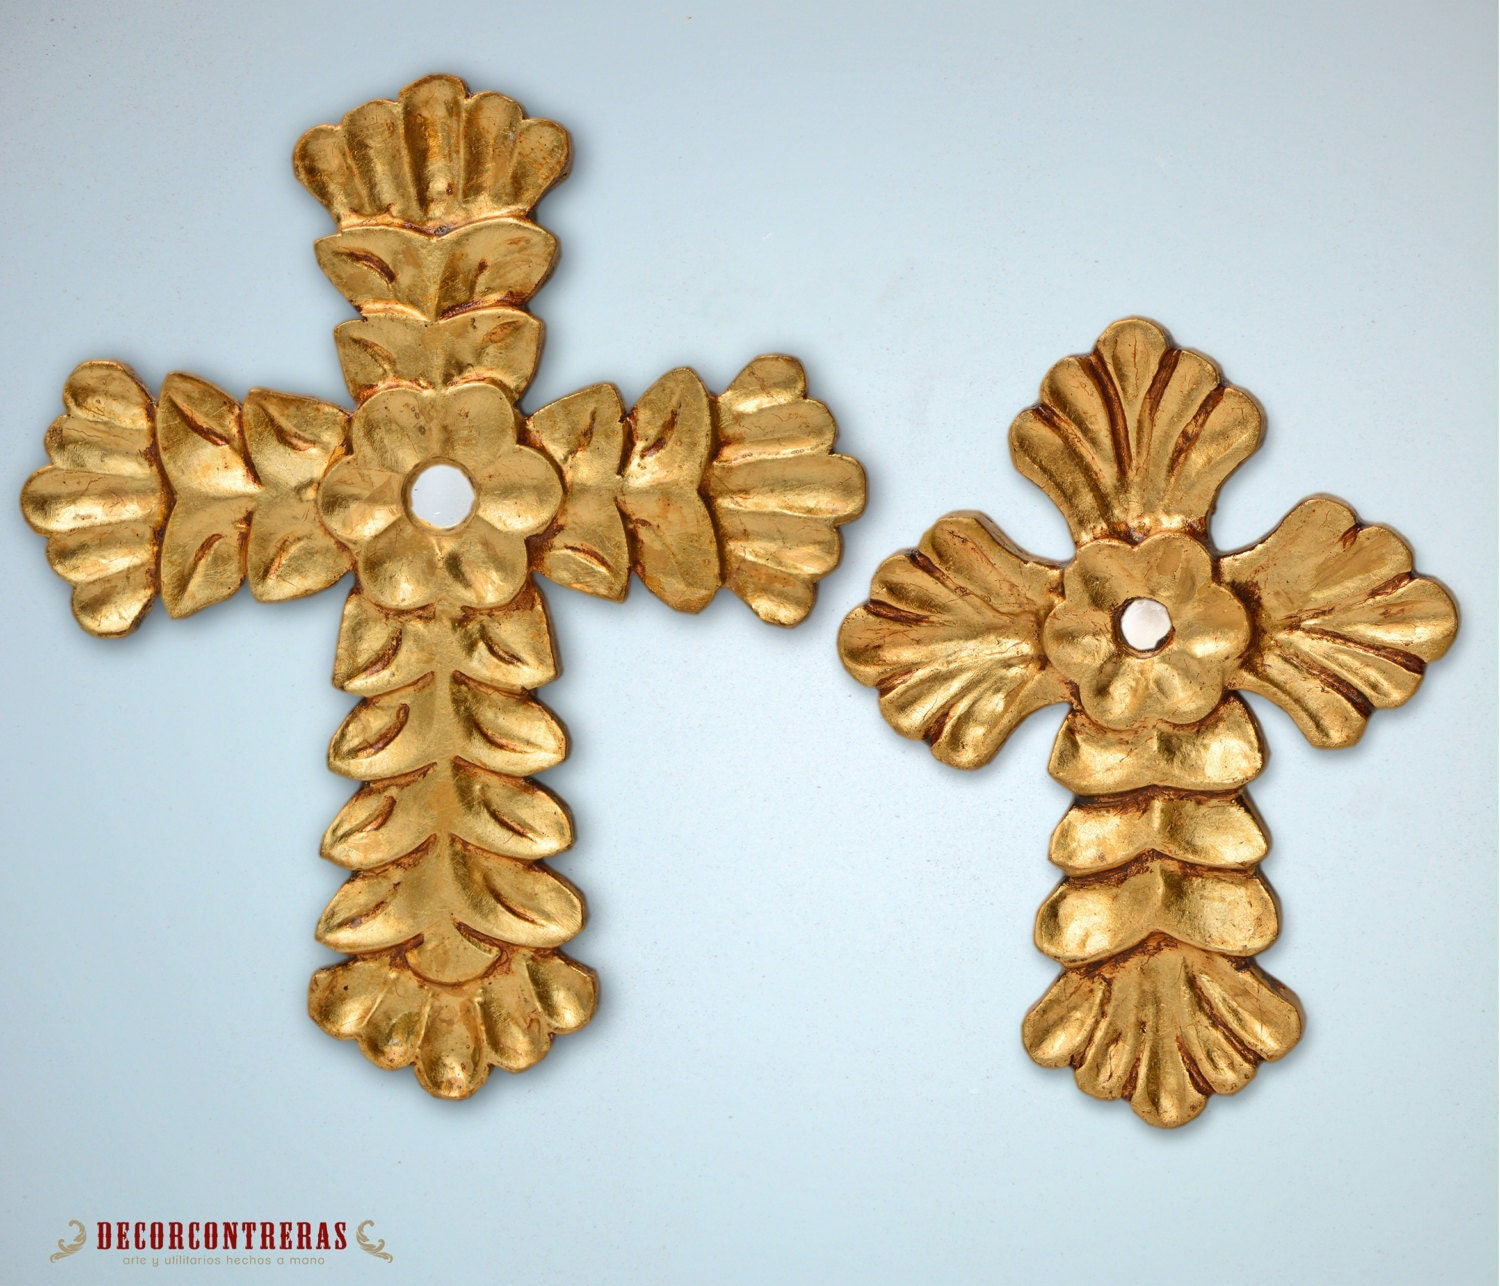 Gold Cross Wall Decor : Set gold decorative crosses for wall ligth of